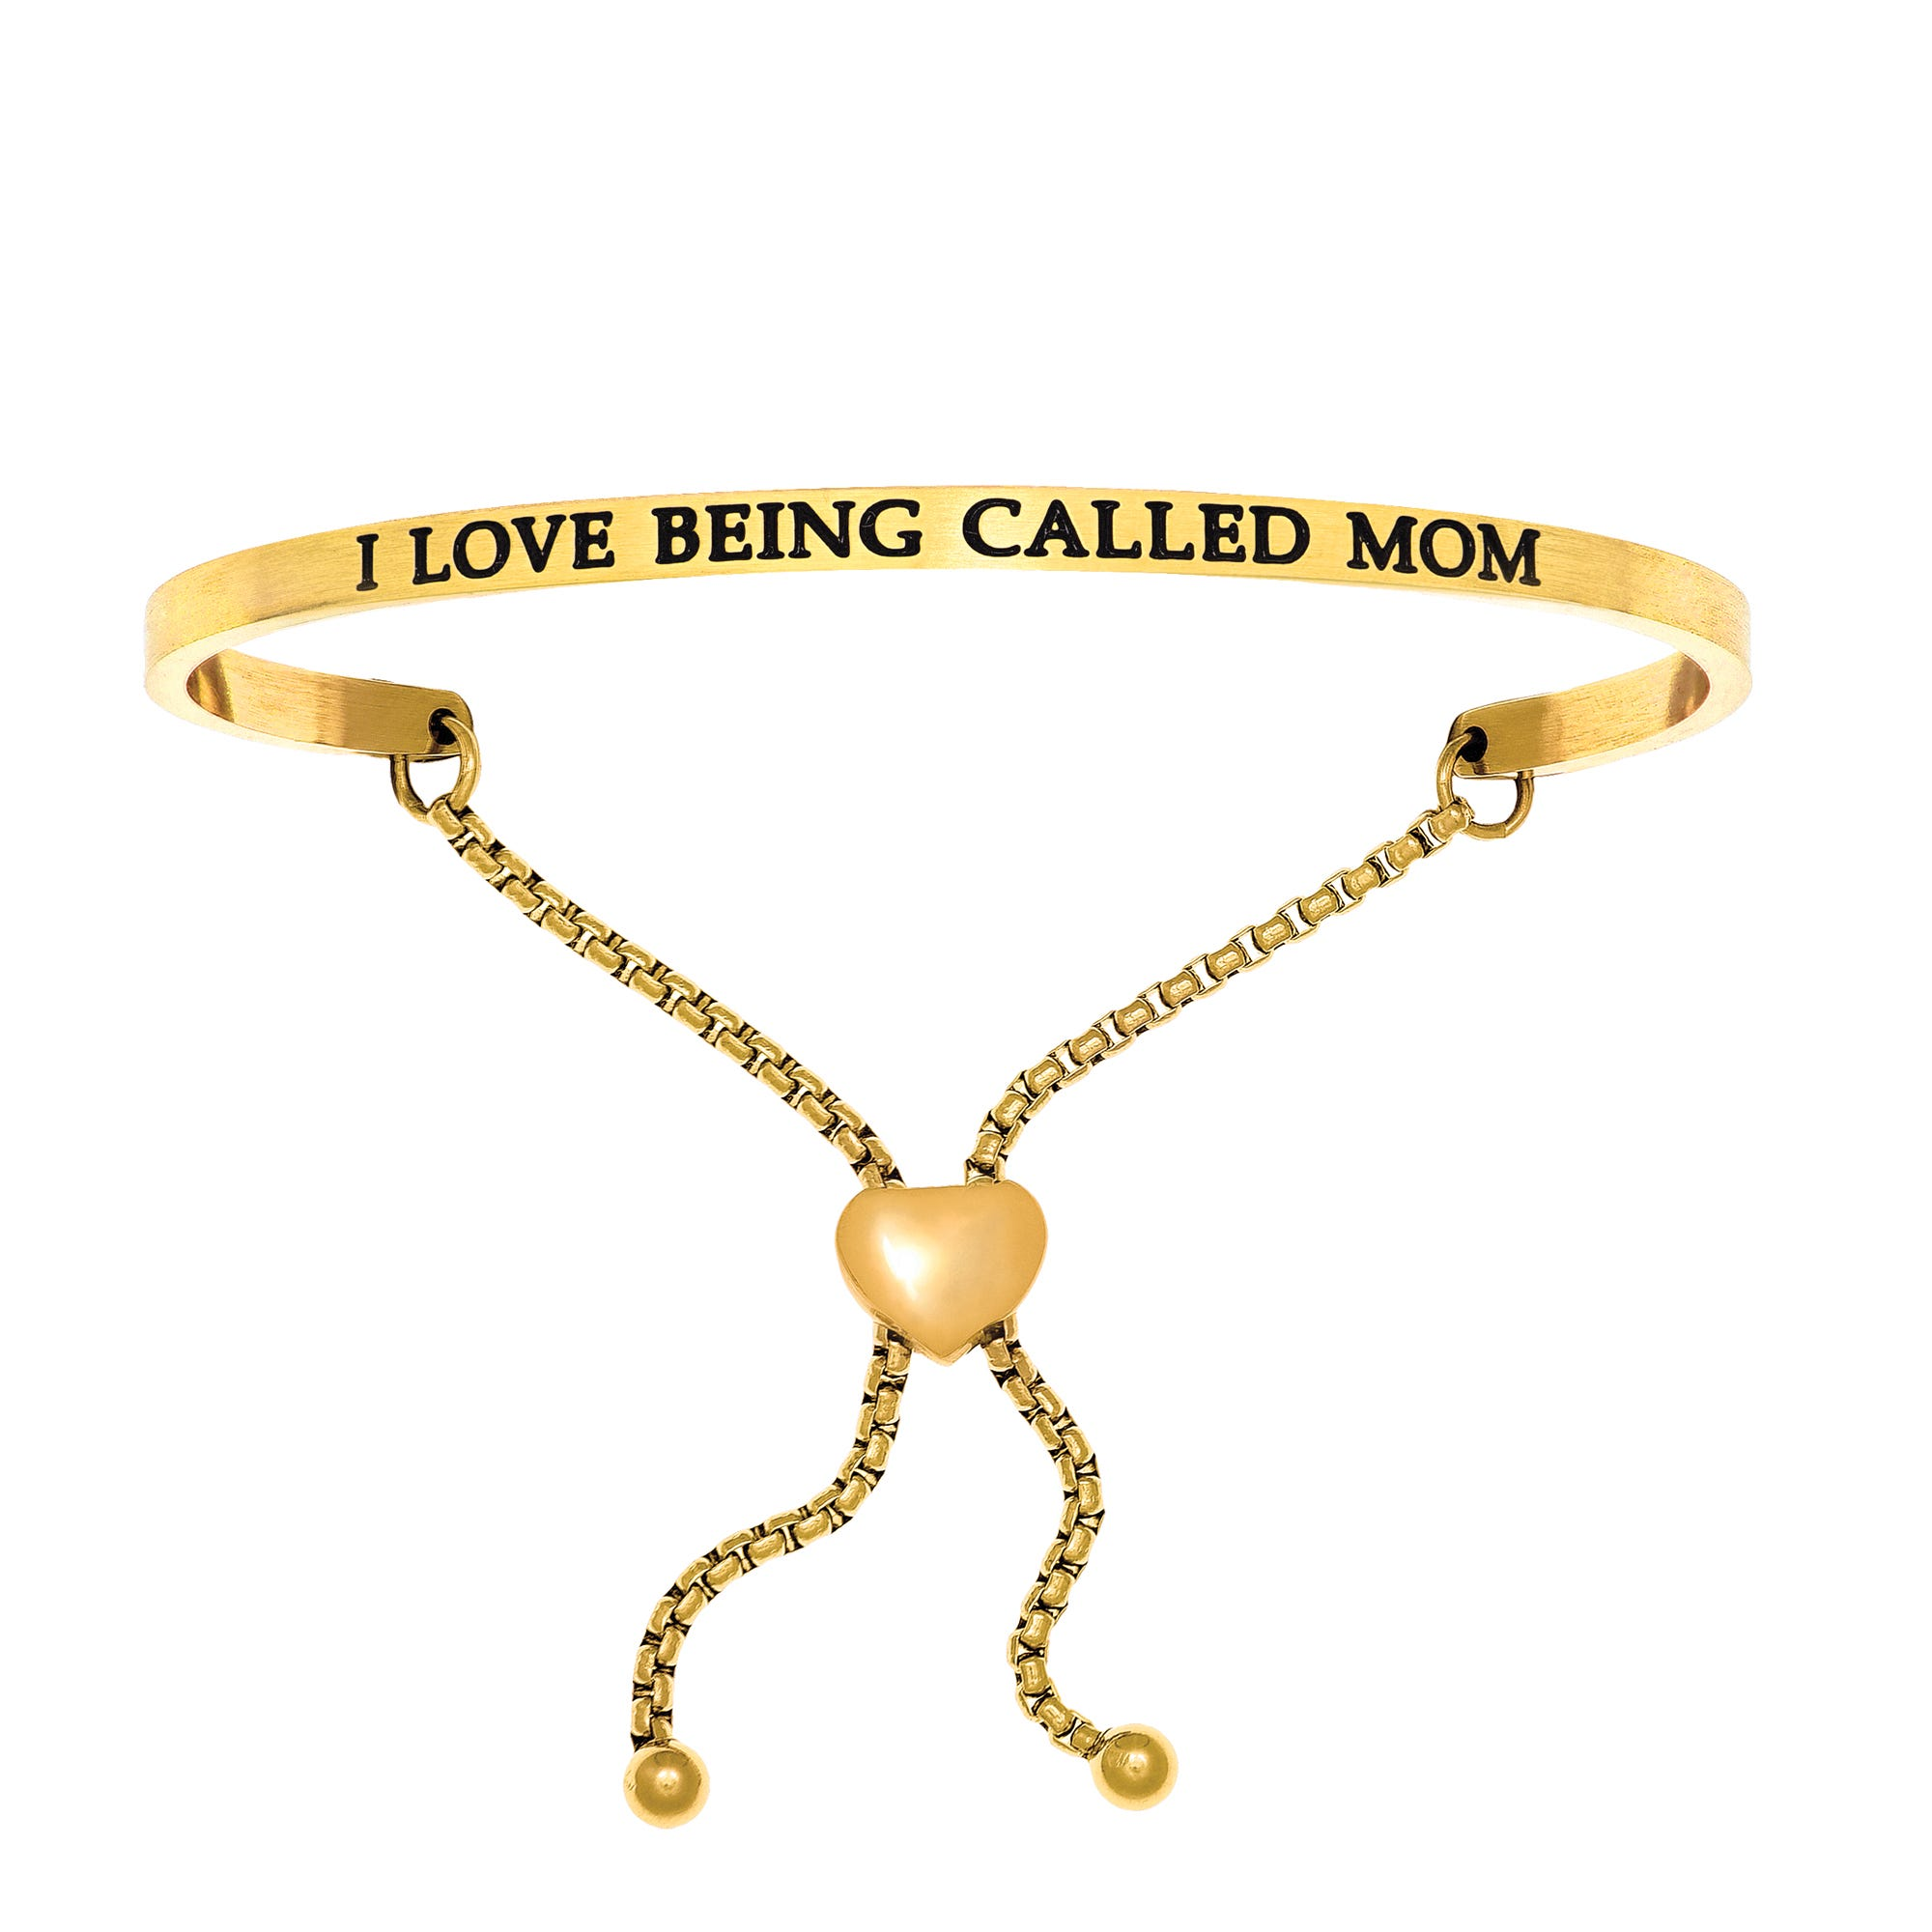 I Love Being Called A Mom. Intuitions Bolo Bracelet in Yellow Stainless Steel